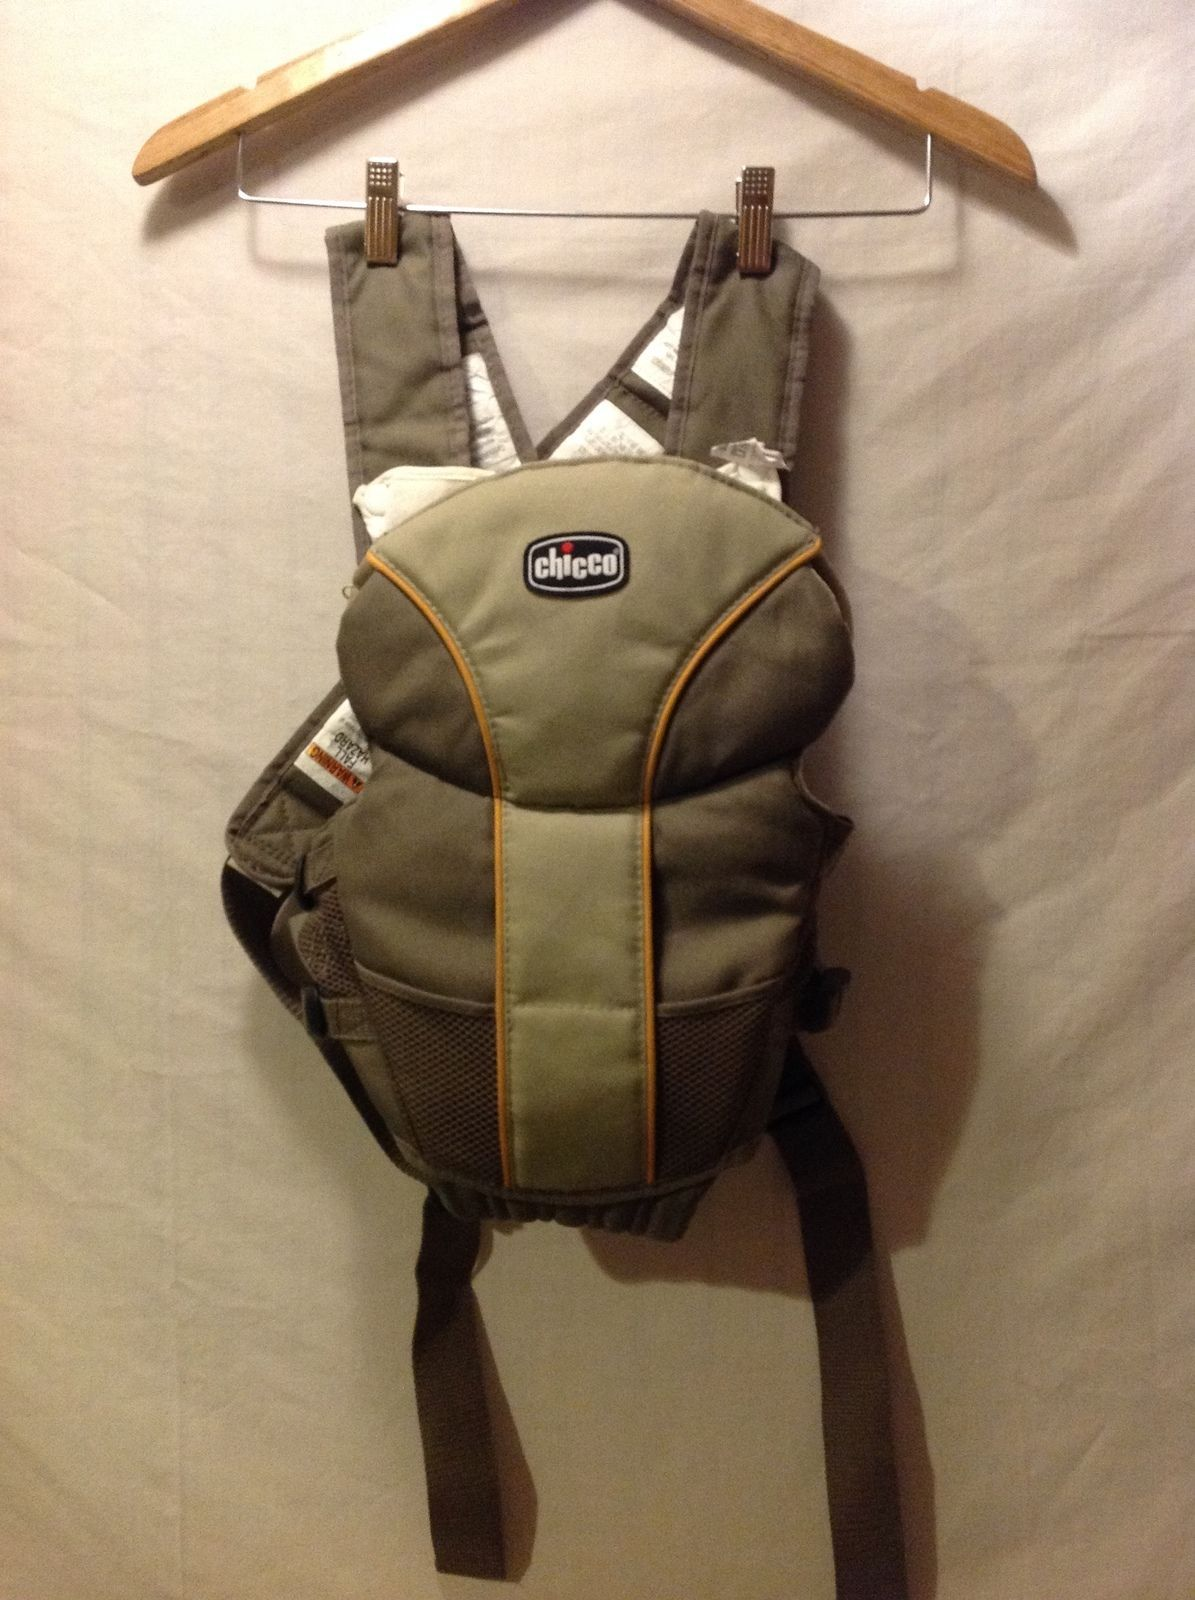 Chicco infant olive green carrier with adjustable straps